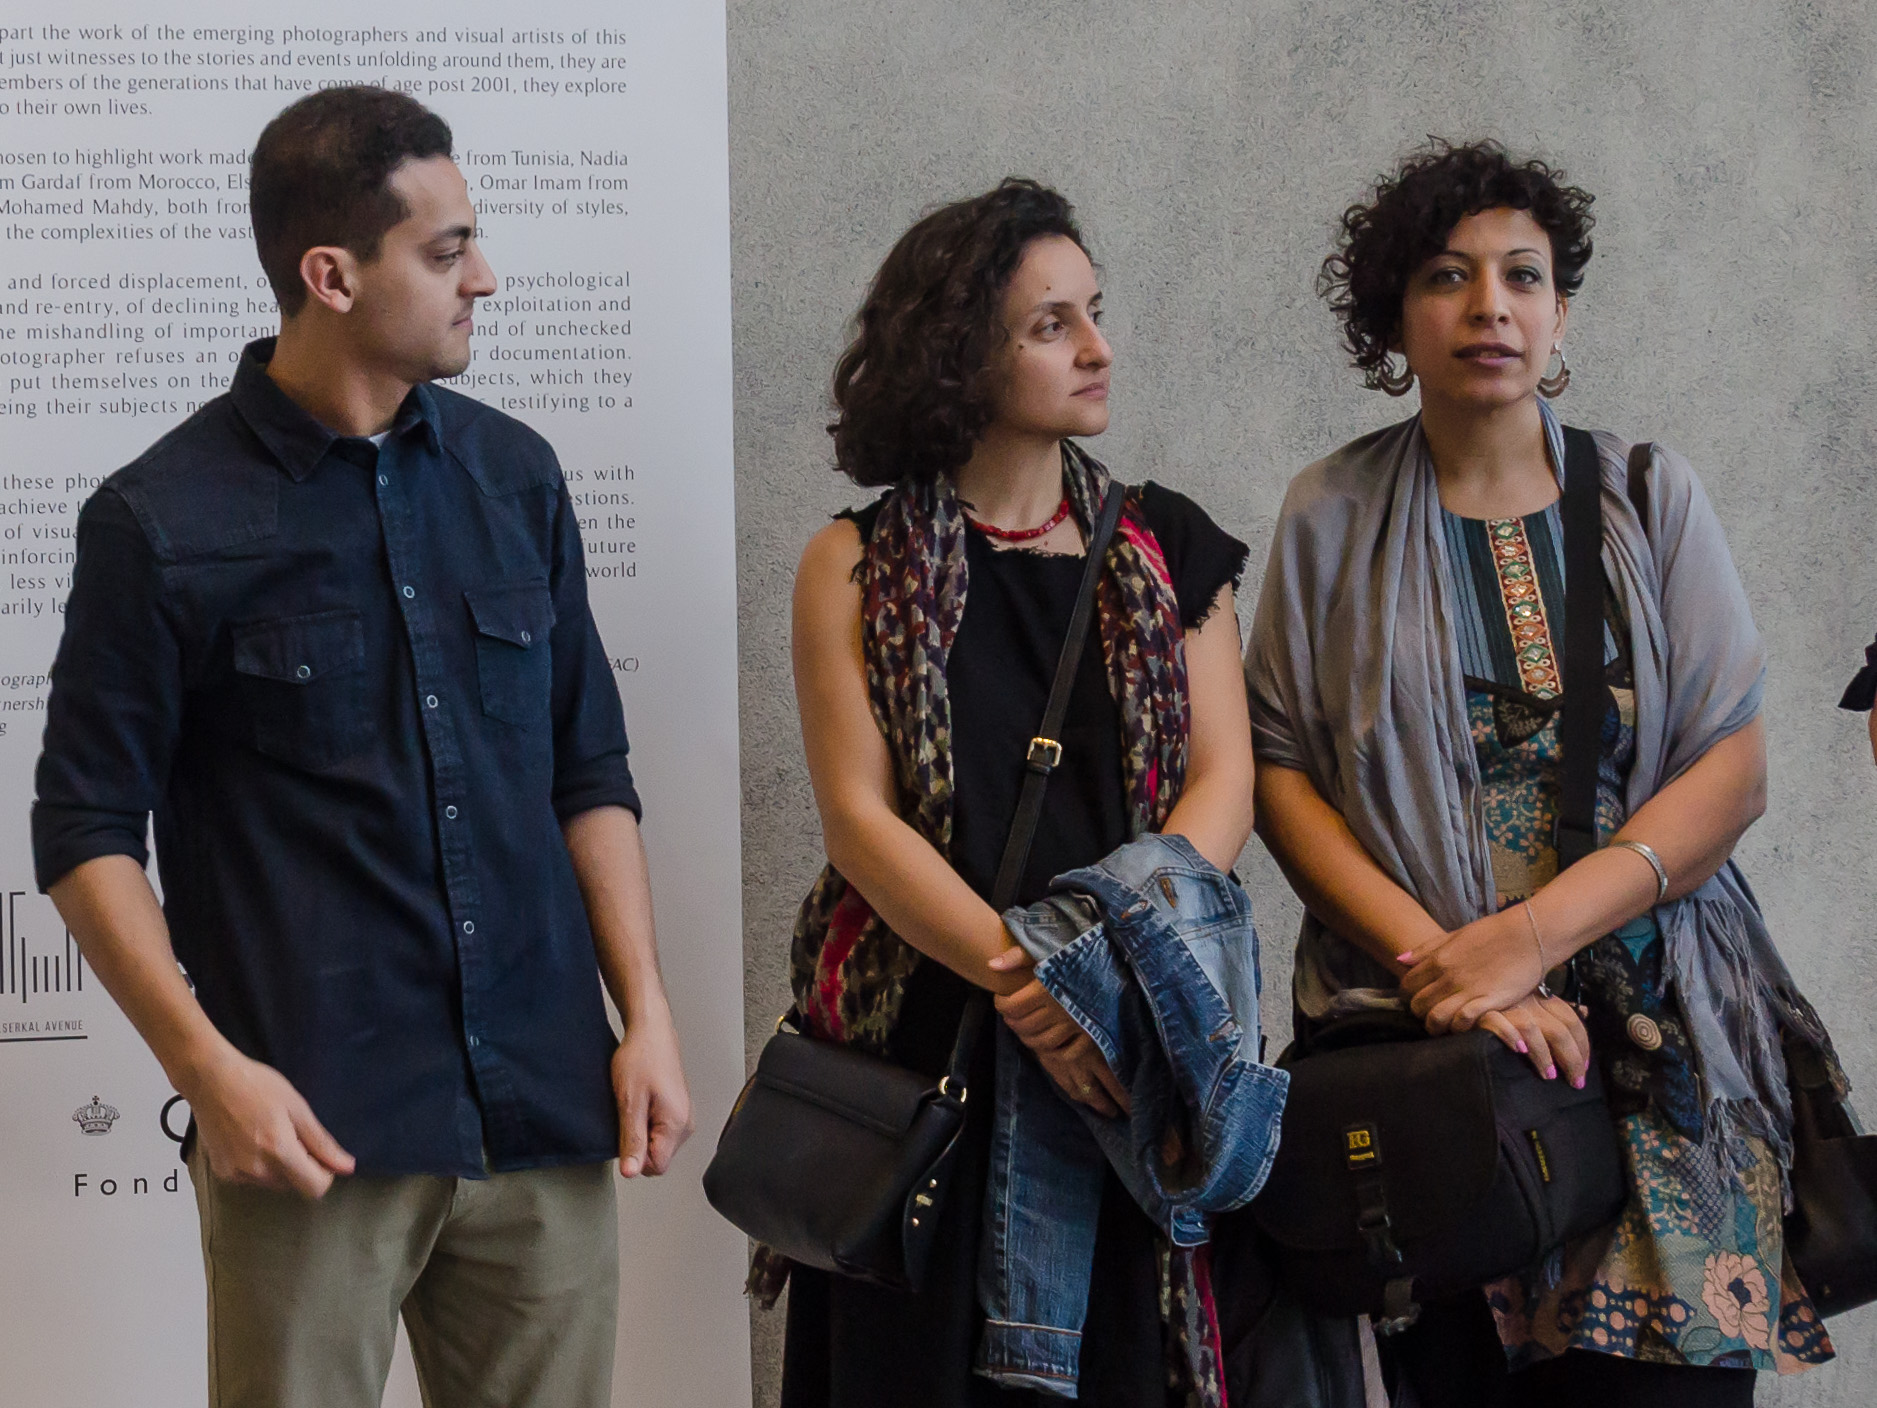 Three Arab photographers at forefront. - GPP Photo Week's guided walk-through